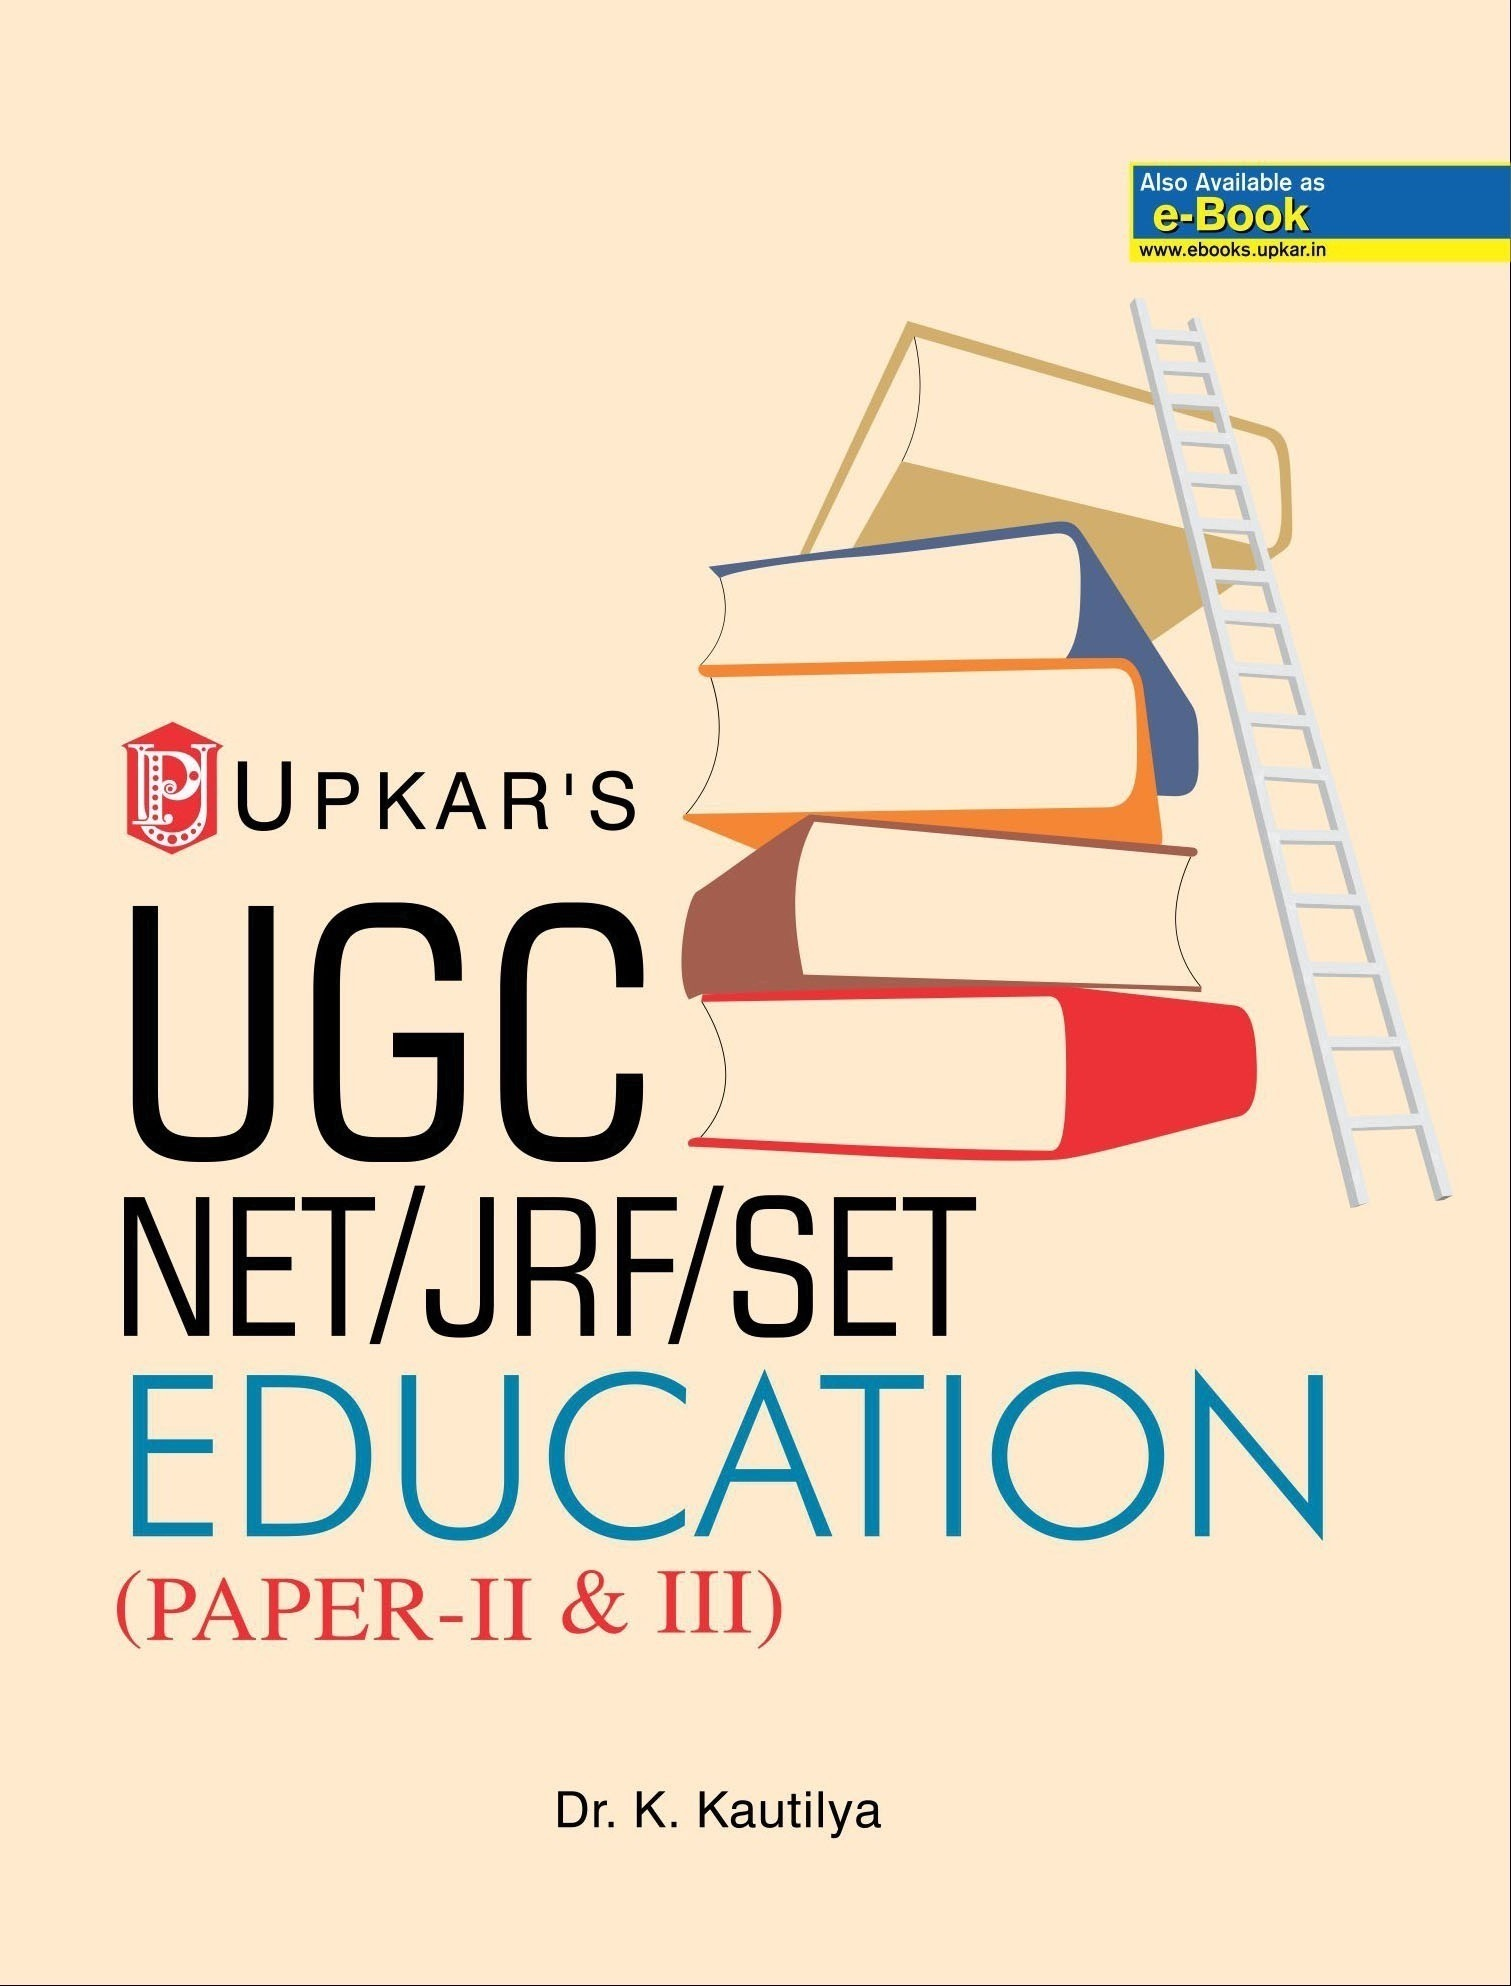 Education Paper II and III for UGC-NET JRF SET